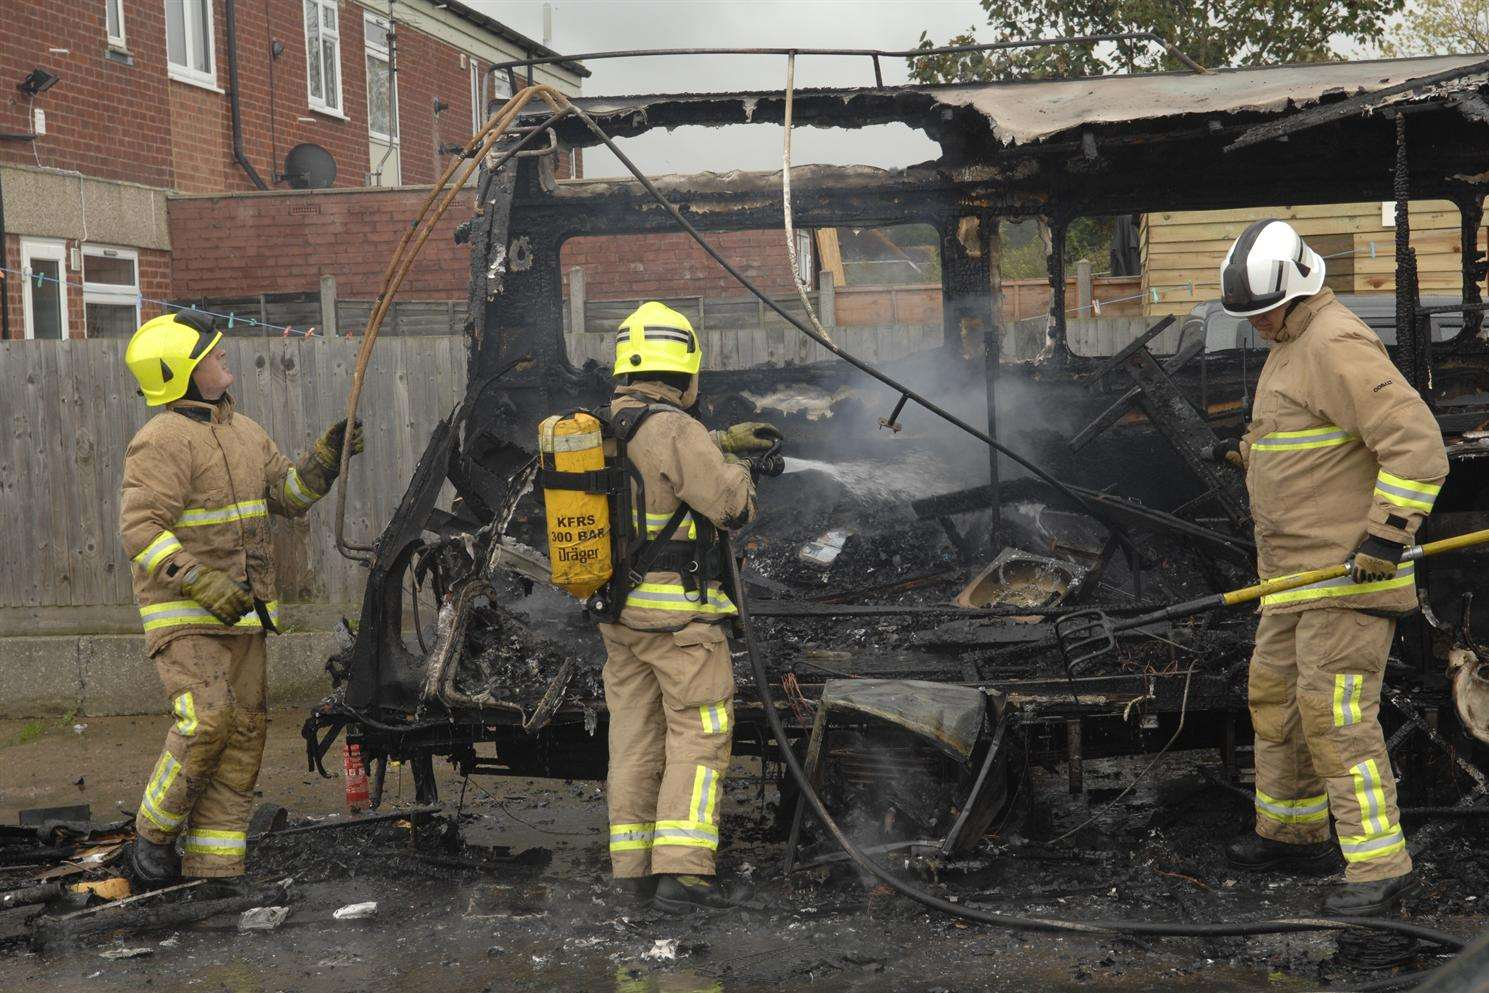 Crews spent almost an hour tackling the blaze